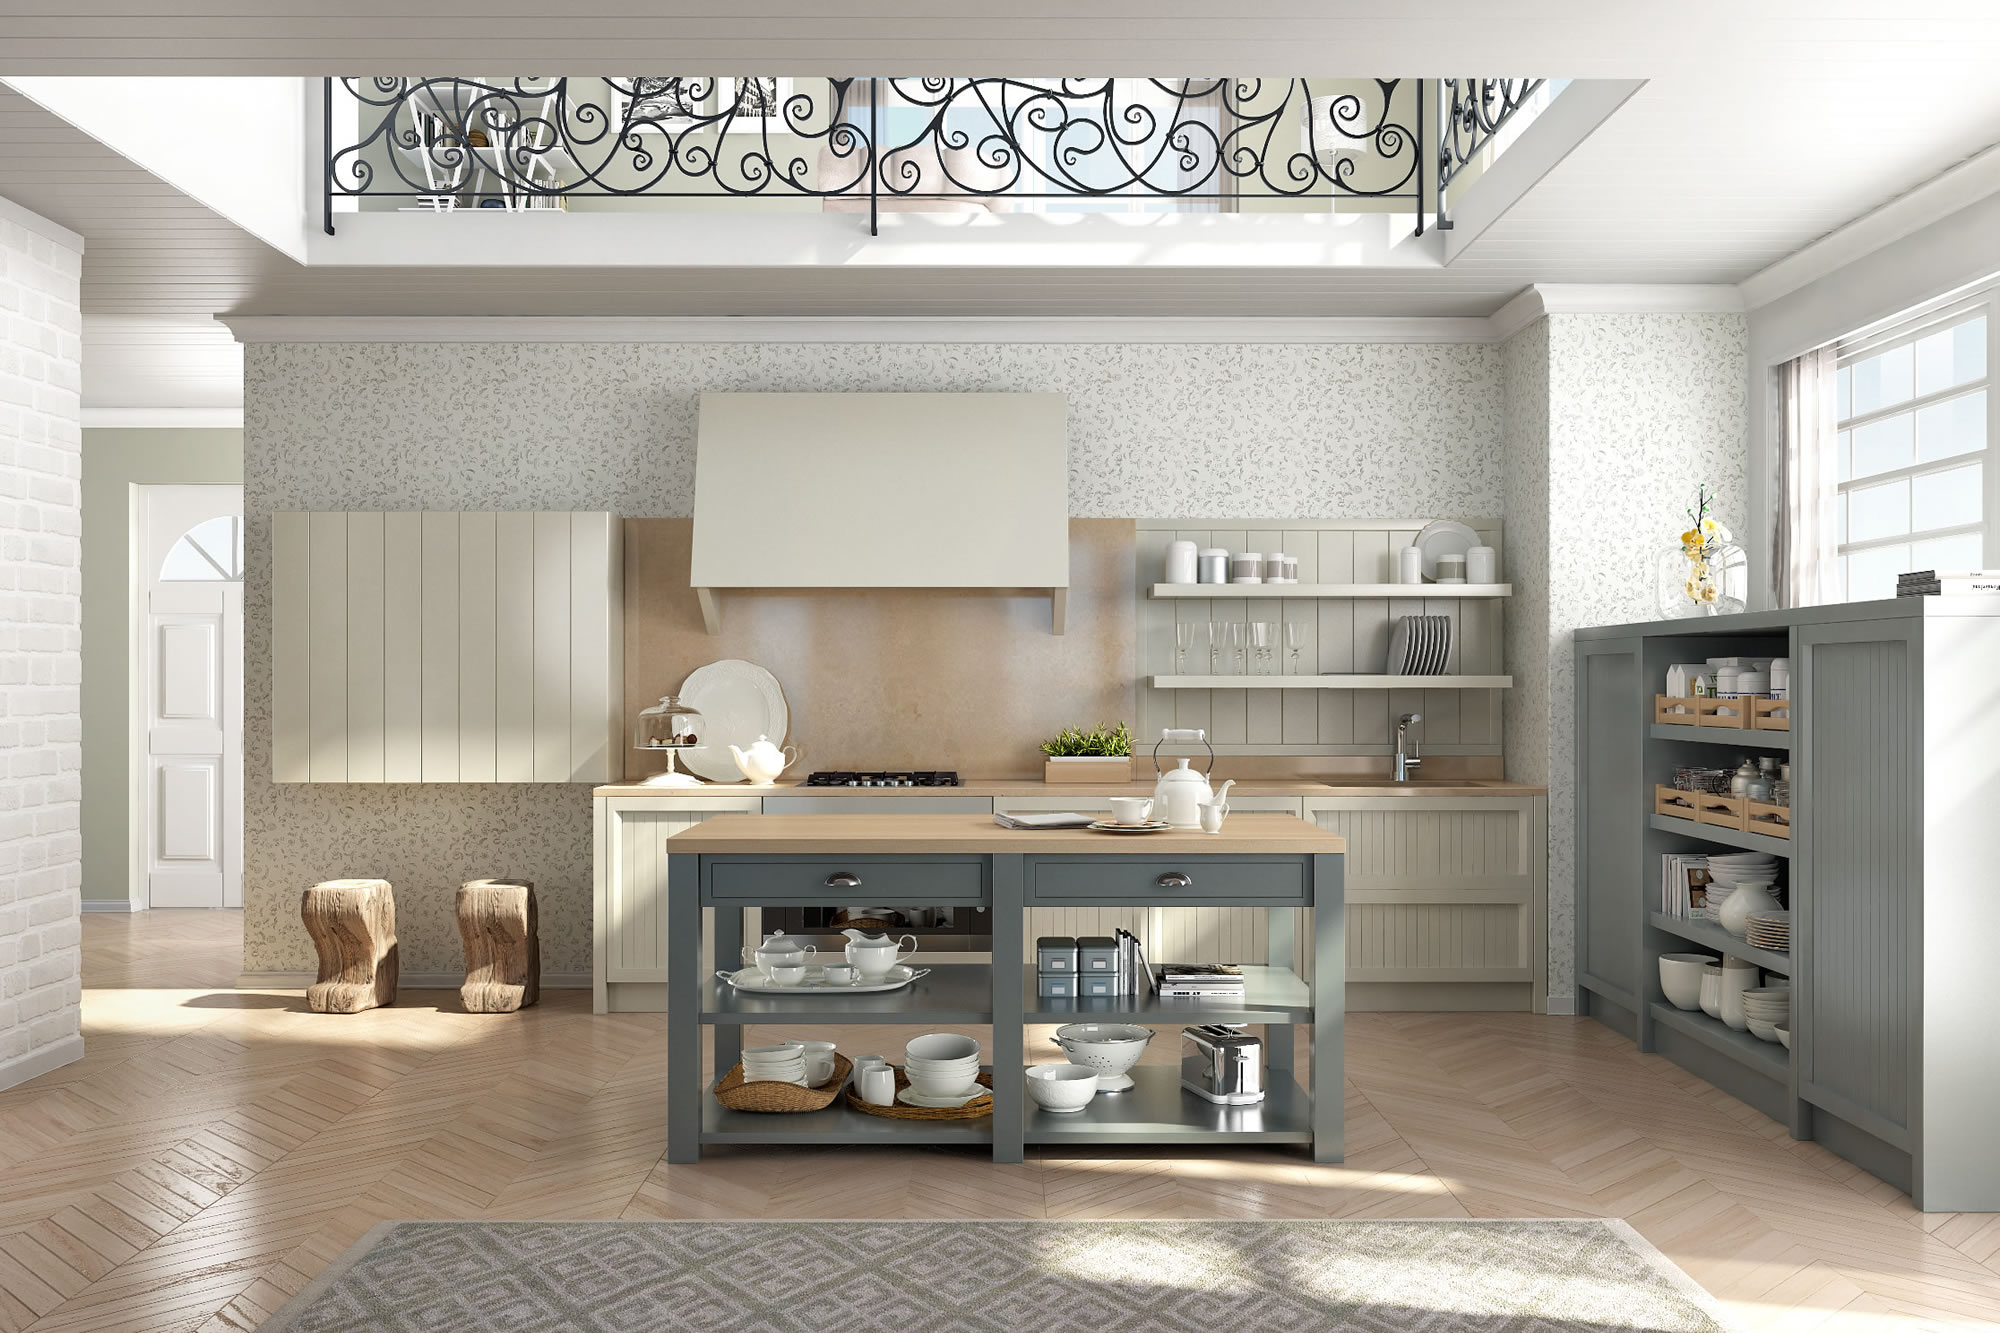 Cucine design stile inglese componibili decorazione d for Arredamento english